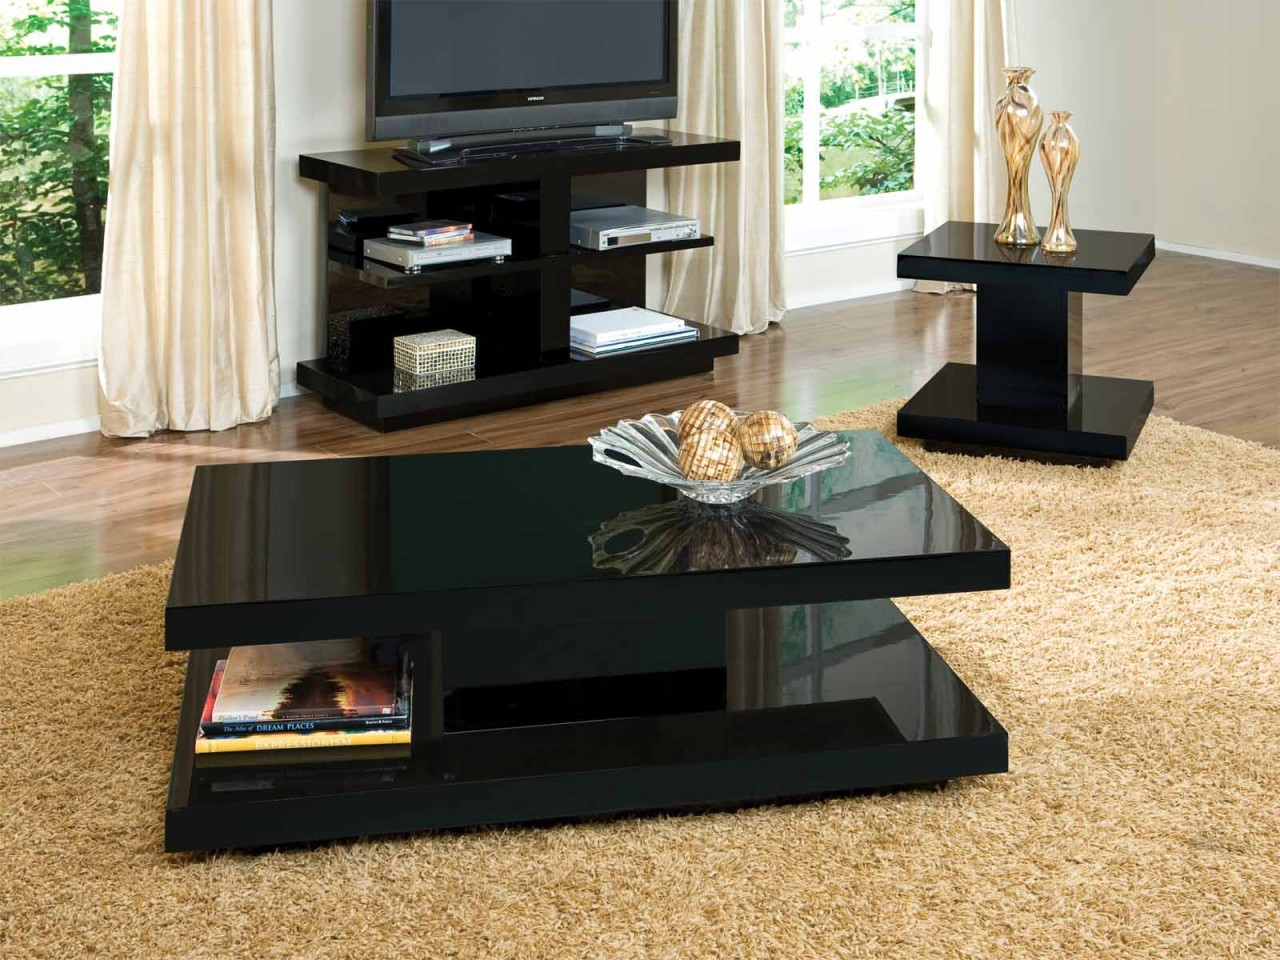 accent tables for living room find the perfect one designs ideas black table with storage home furnishing items eugene white winsome glass kitchen outdoor grill prep bargain